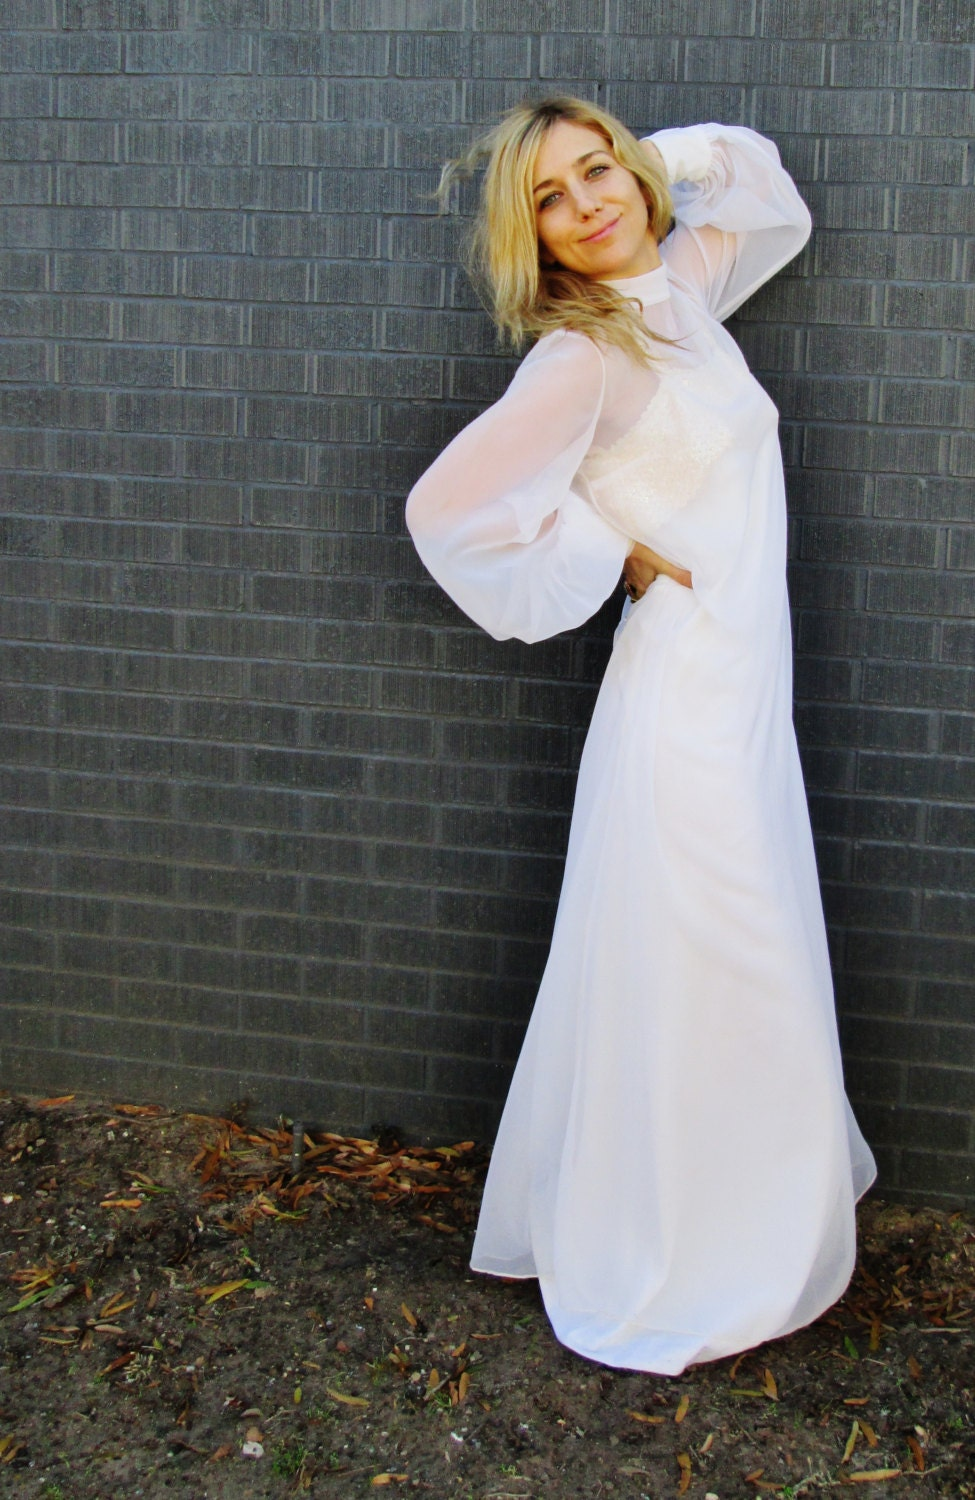 1970s ANGEL white wedding dress. sheer overlay bohemian mod maxi gown. sequin detailing. vintage retro bridal gown. button back gown - AlexAndAftonVintedge